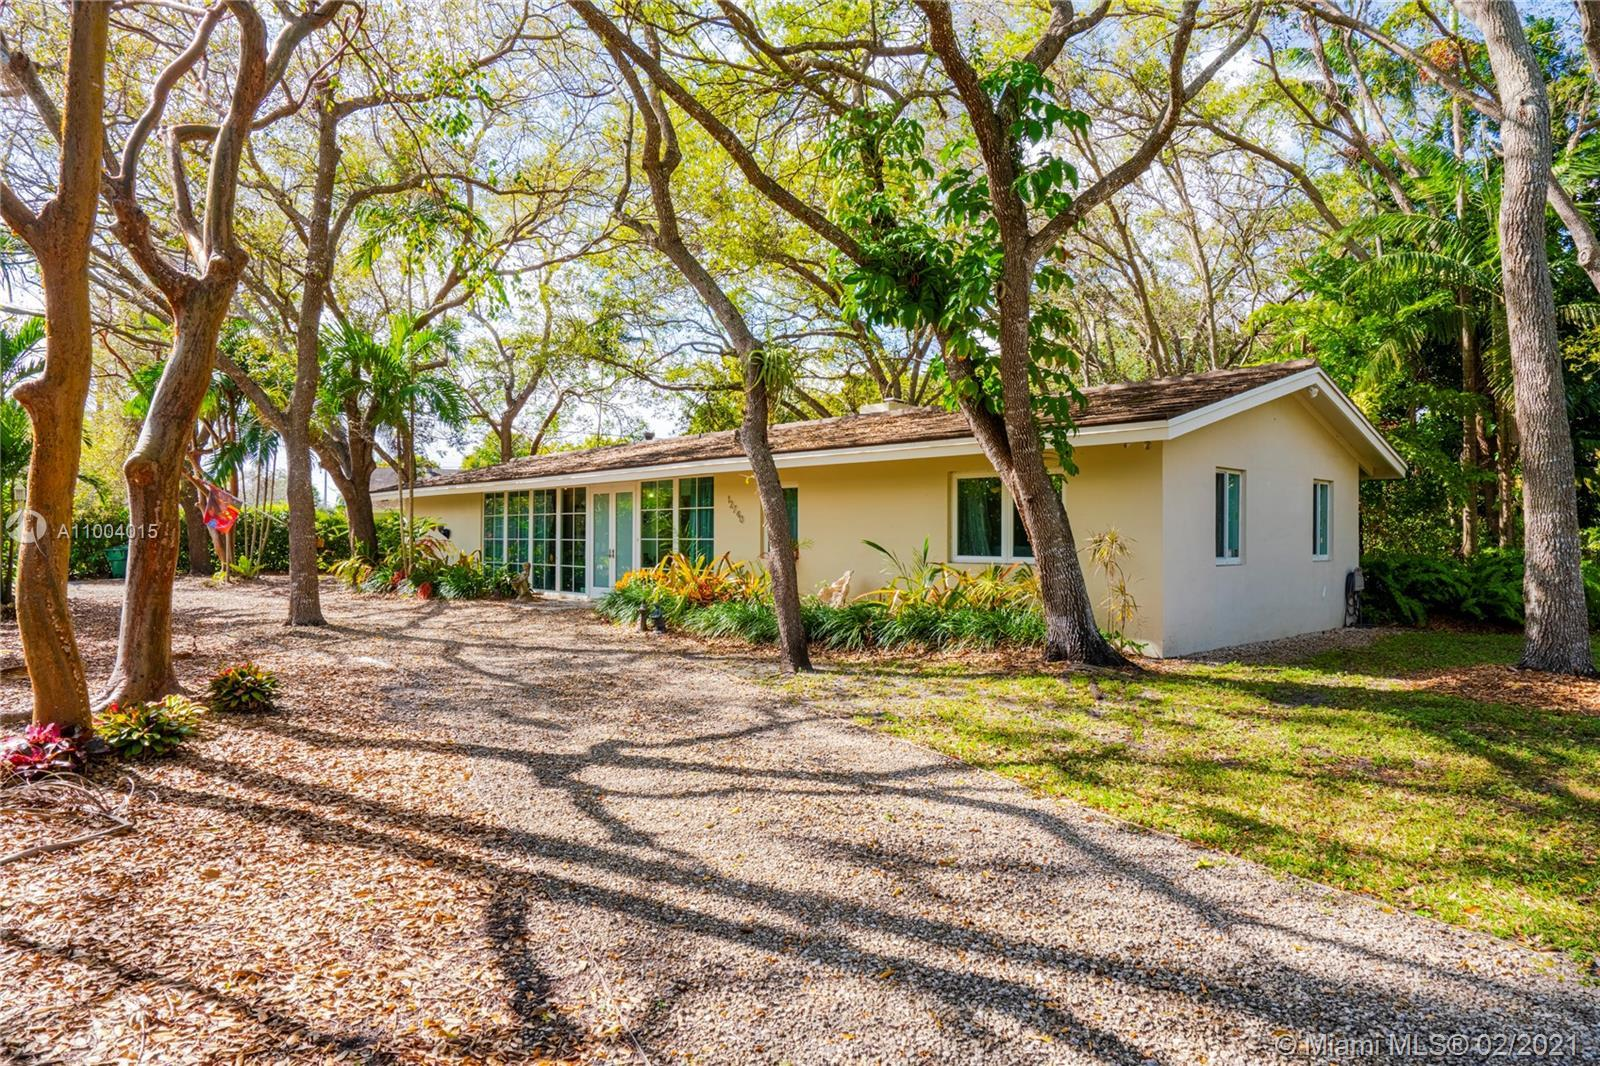 **PRESTIGIOUS PINECREST** GORGEOUS HOME & PROPERTY ON A BEAUTIFUL CORNER 1/2 ACRE LOT WITH MATURE &